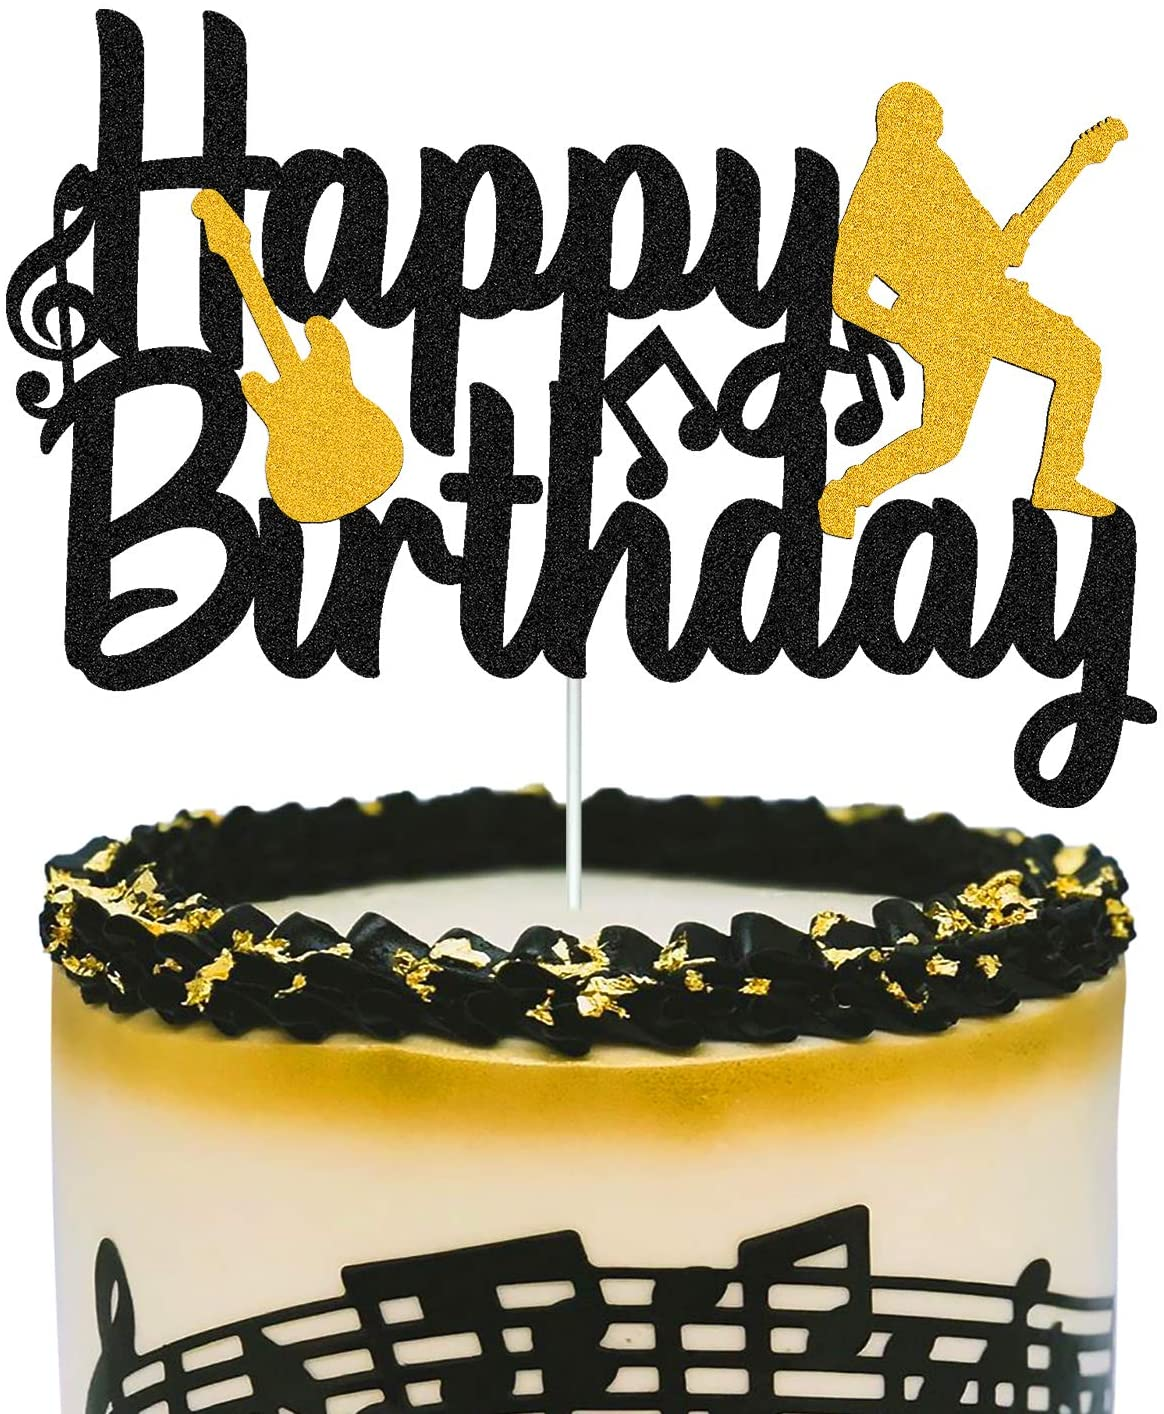 Amazon Com Music Cake Topper Happy Birthday Sign Musical Notes Player Cake Decorations For Musical Rock Theme Man Boy Girl Birthday Party Supplies Double Sided Black Sparkle Decor Home Kitchen